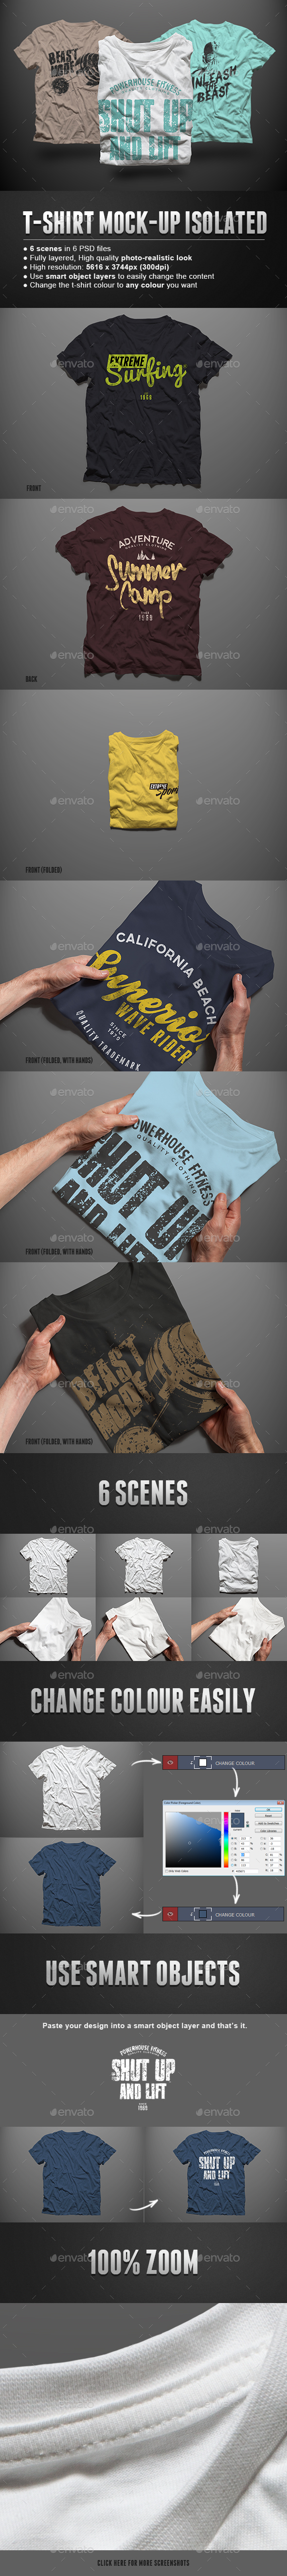 T-shirt Mock-up Isolated